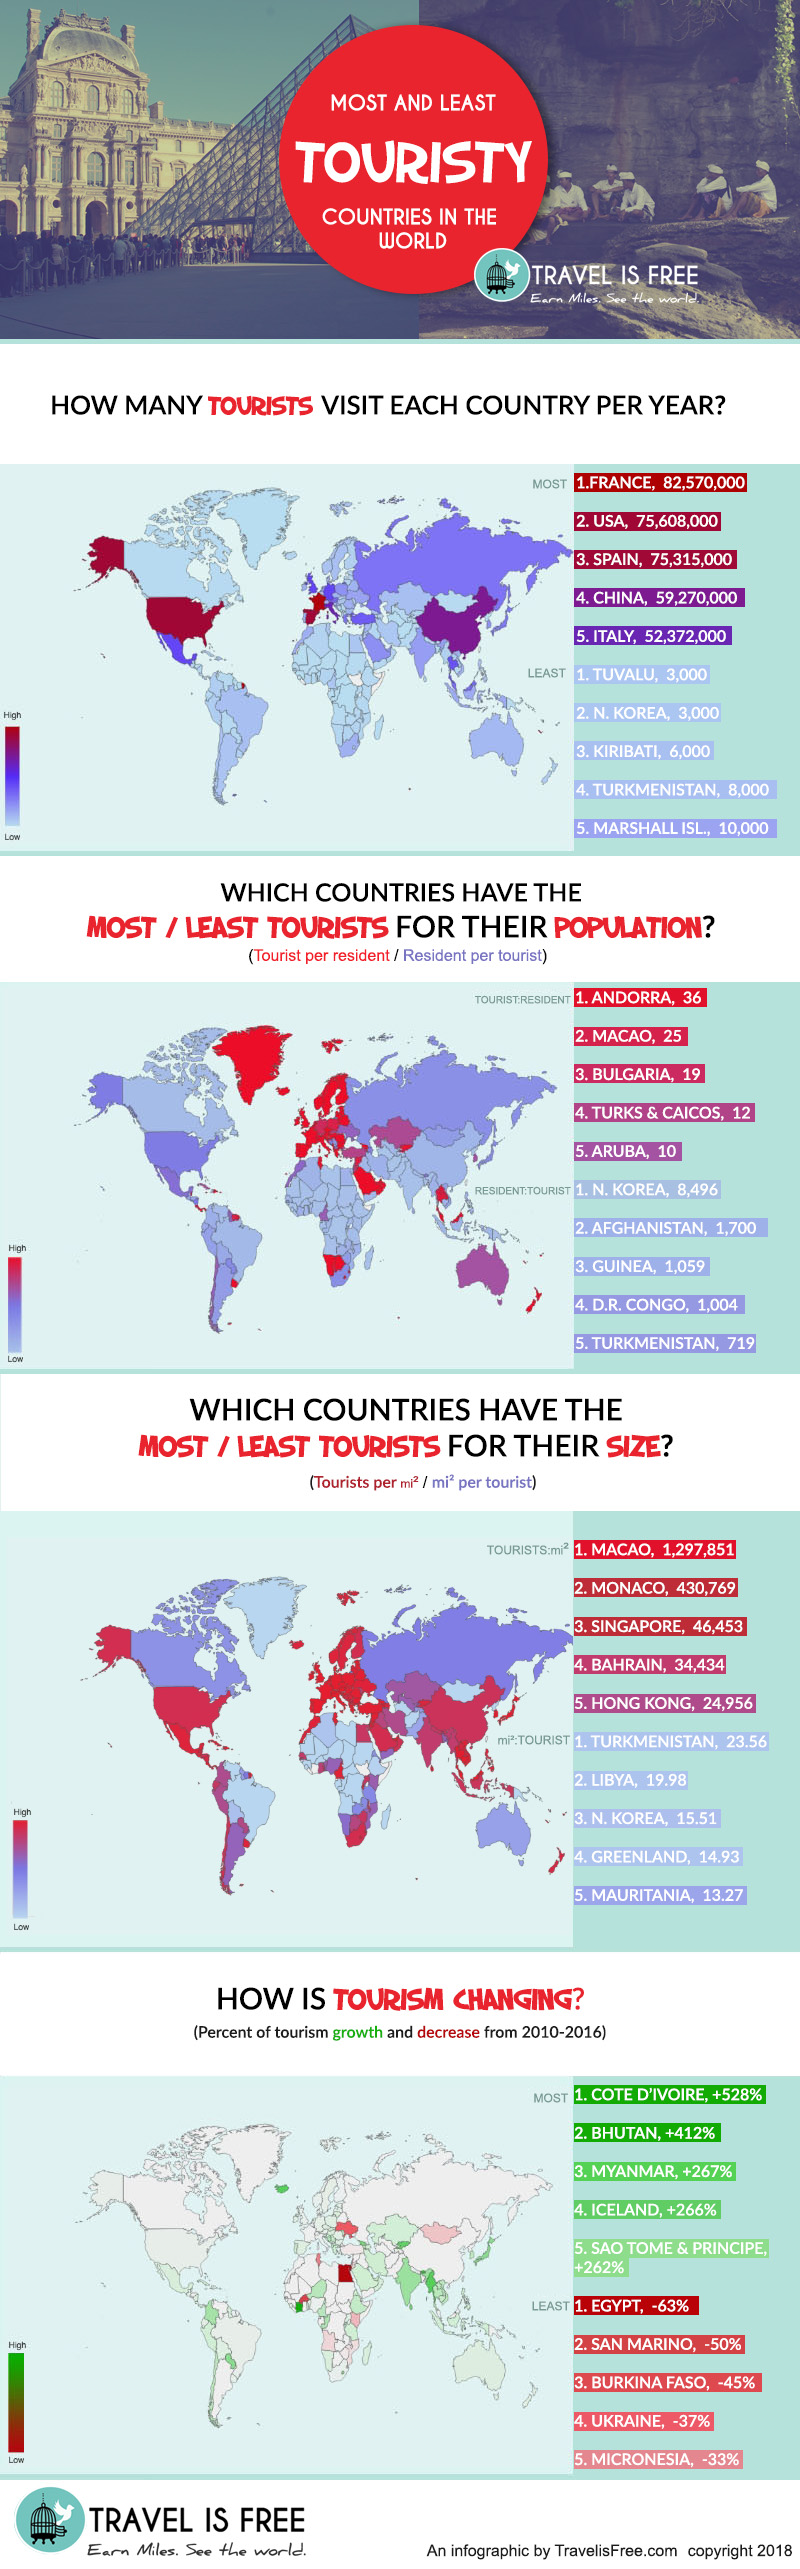 Most and least touristy countries